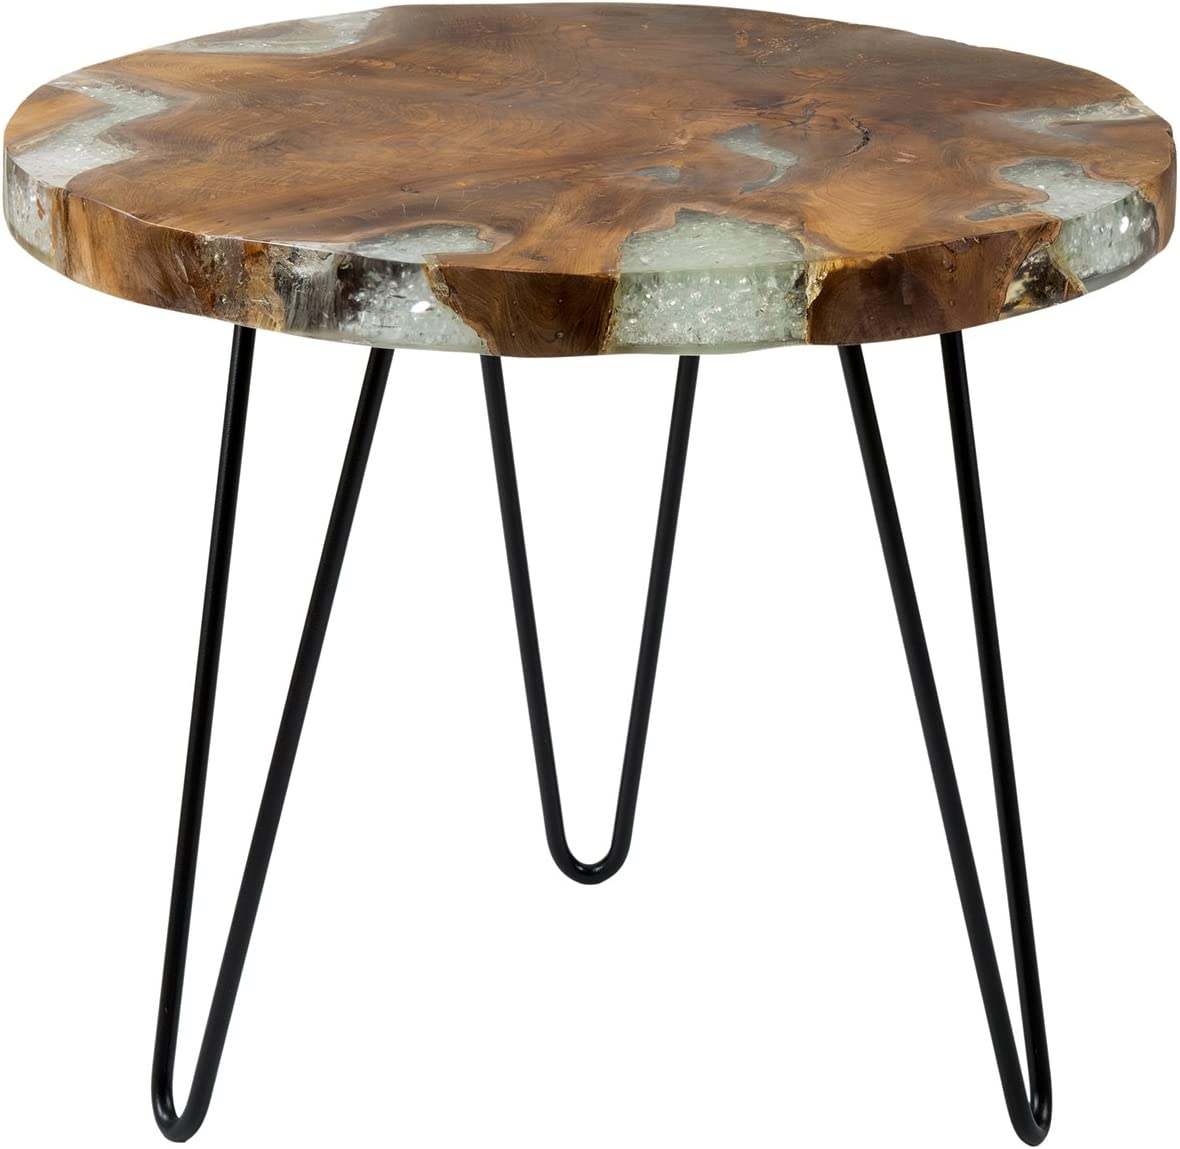 EAST at MAIN Wellton Brown Round Teakwood Accent End Table, (22x22x19)